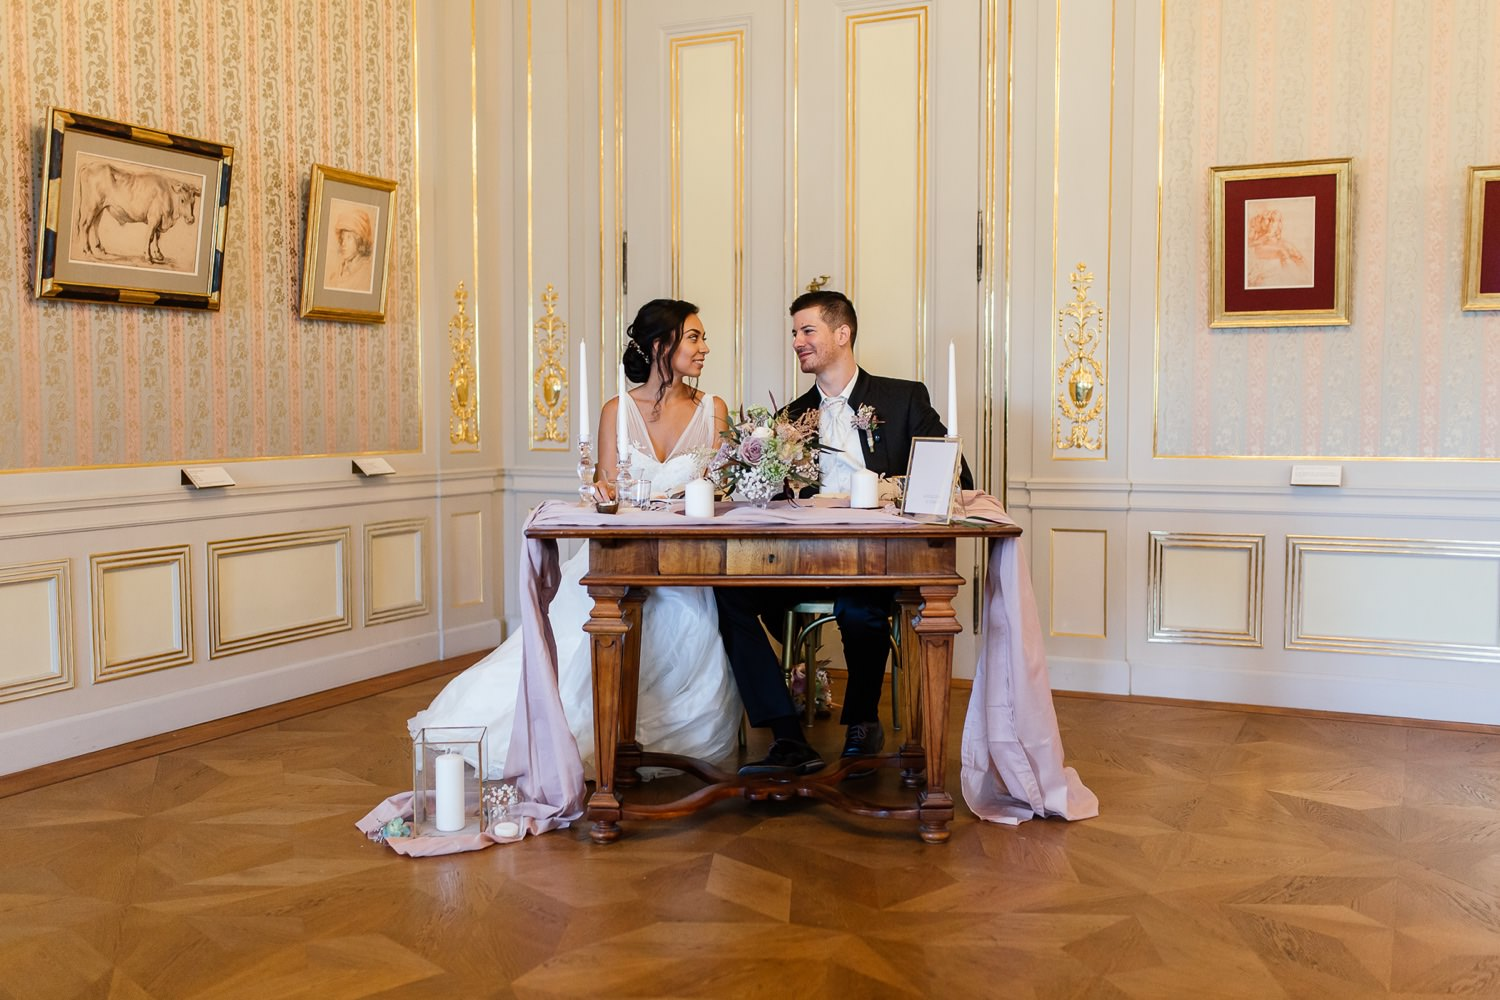 Heiraten in der Albertina in Wien